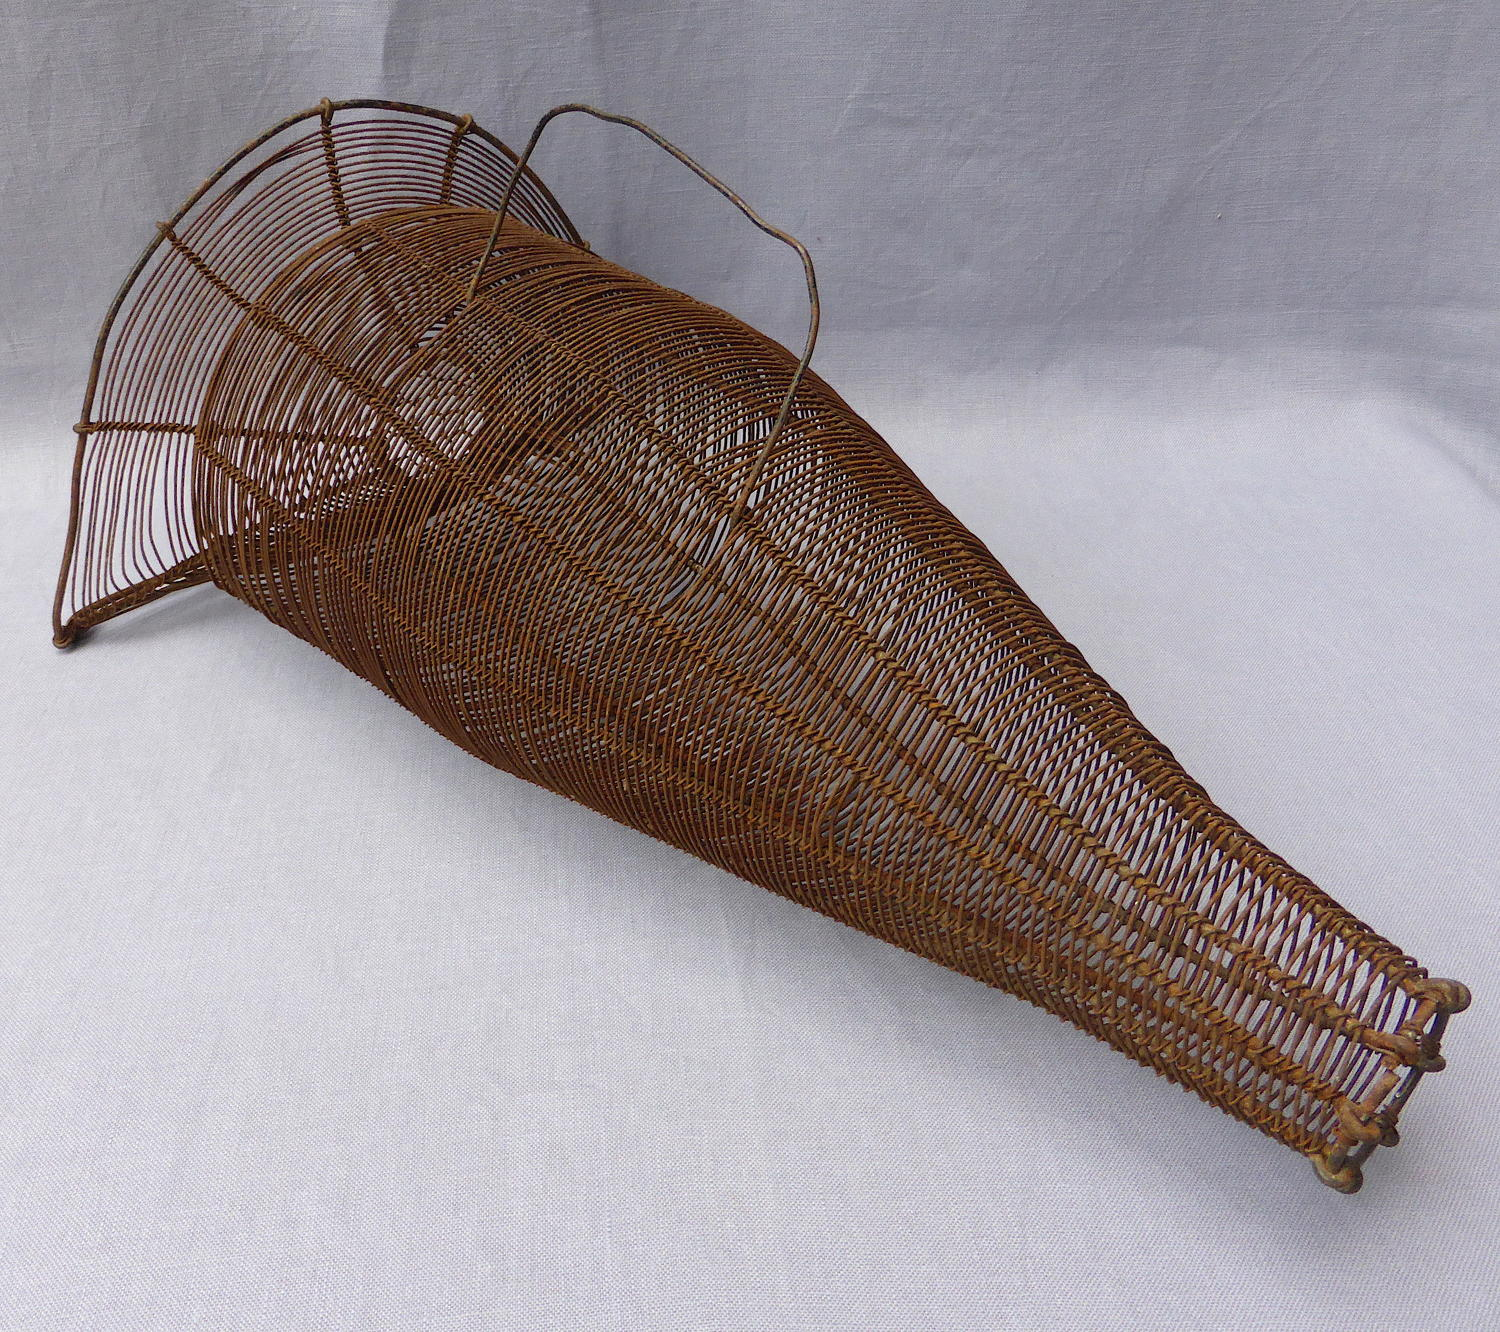 Early 20th century wire basket eel trap